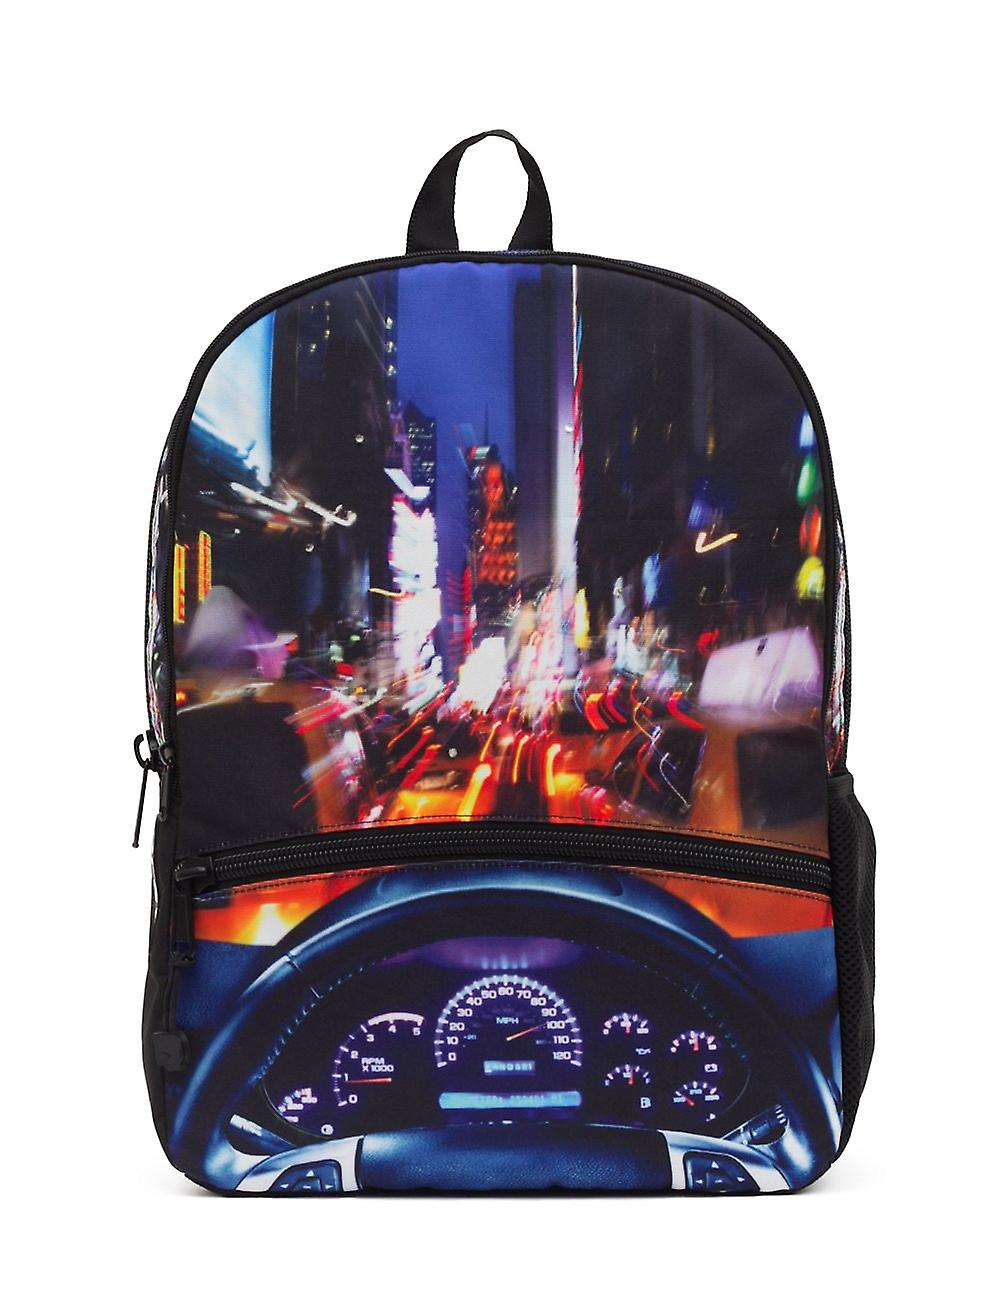 Mojo Backpacks NYC Cruisin Bag Accessory School LED Lights Driving Car New York